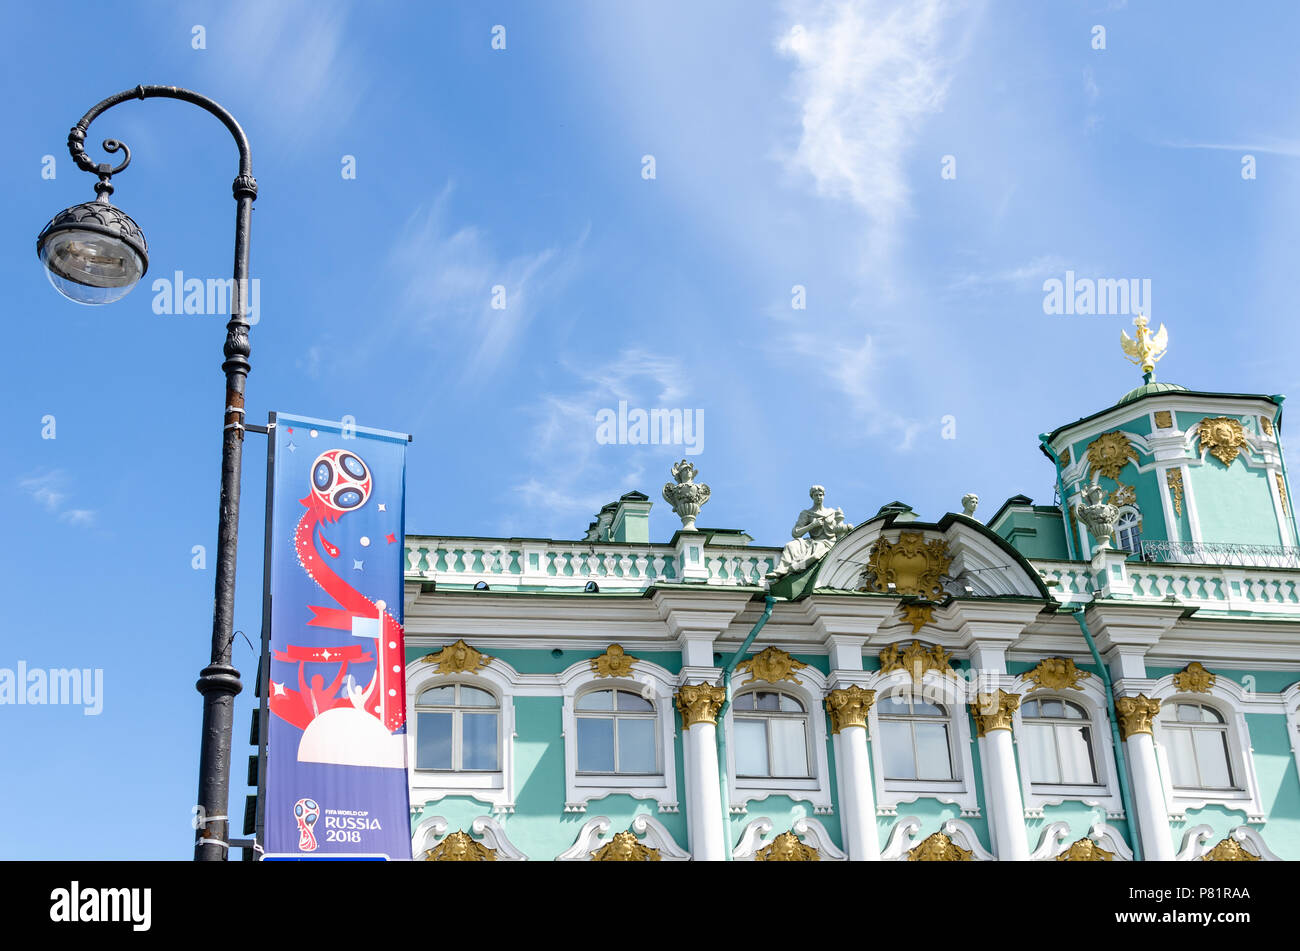 Official FIFA World Cup 2018 banner by the Winter Palace and Hermitage Museum in St Petersburg, Russia - Stock Image